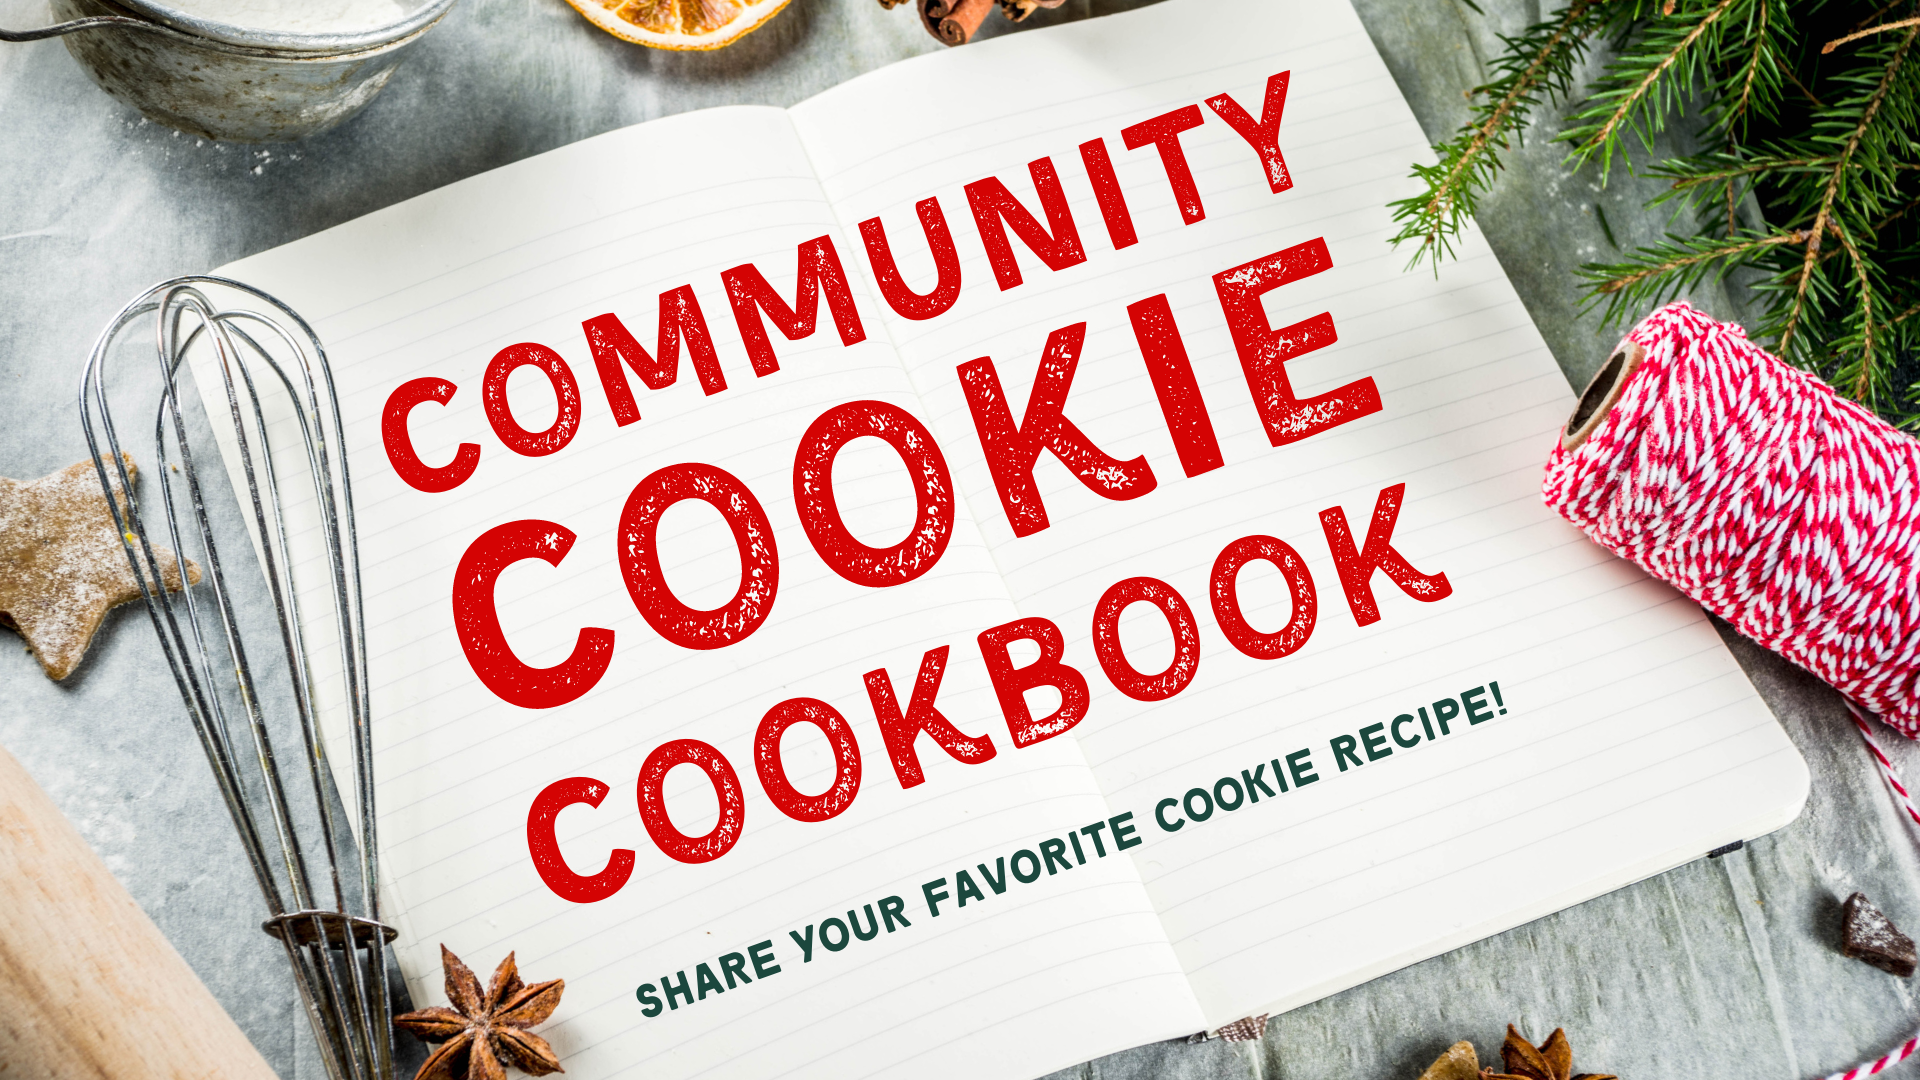 Community Cookie Cookbook: Share your favorite cookie recipe with us!